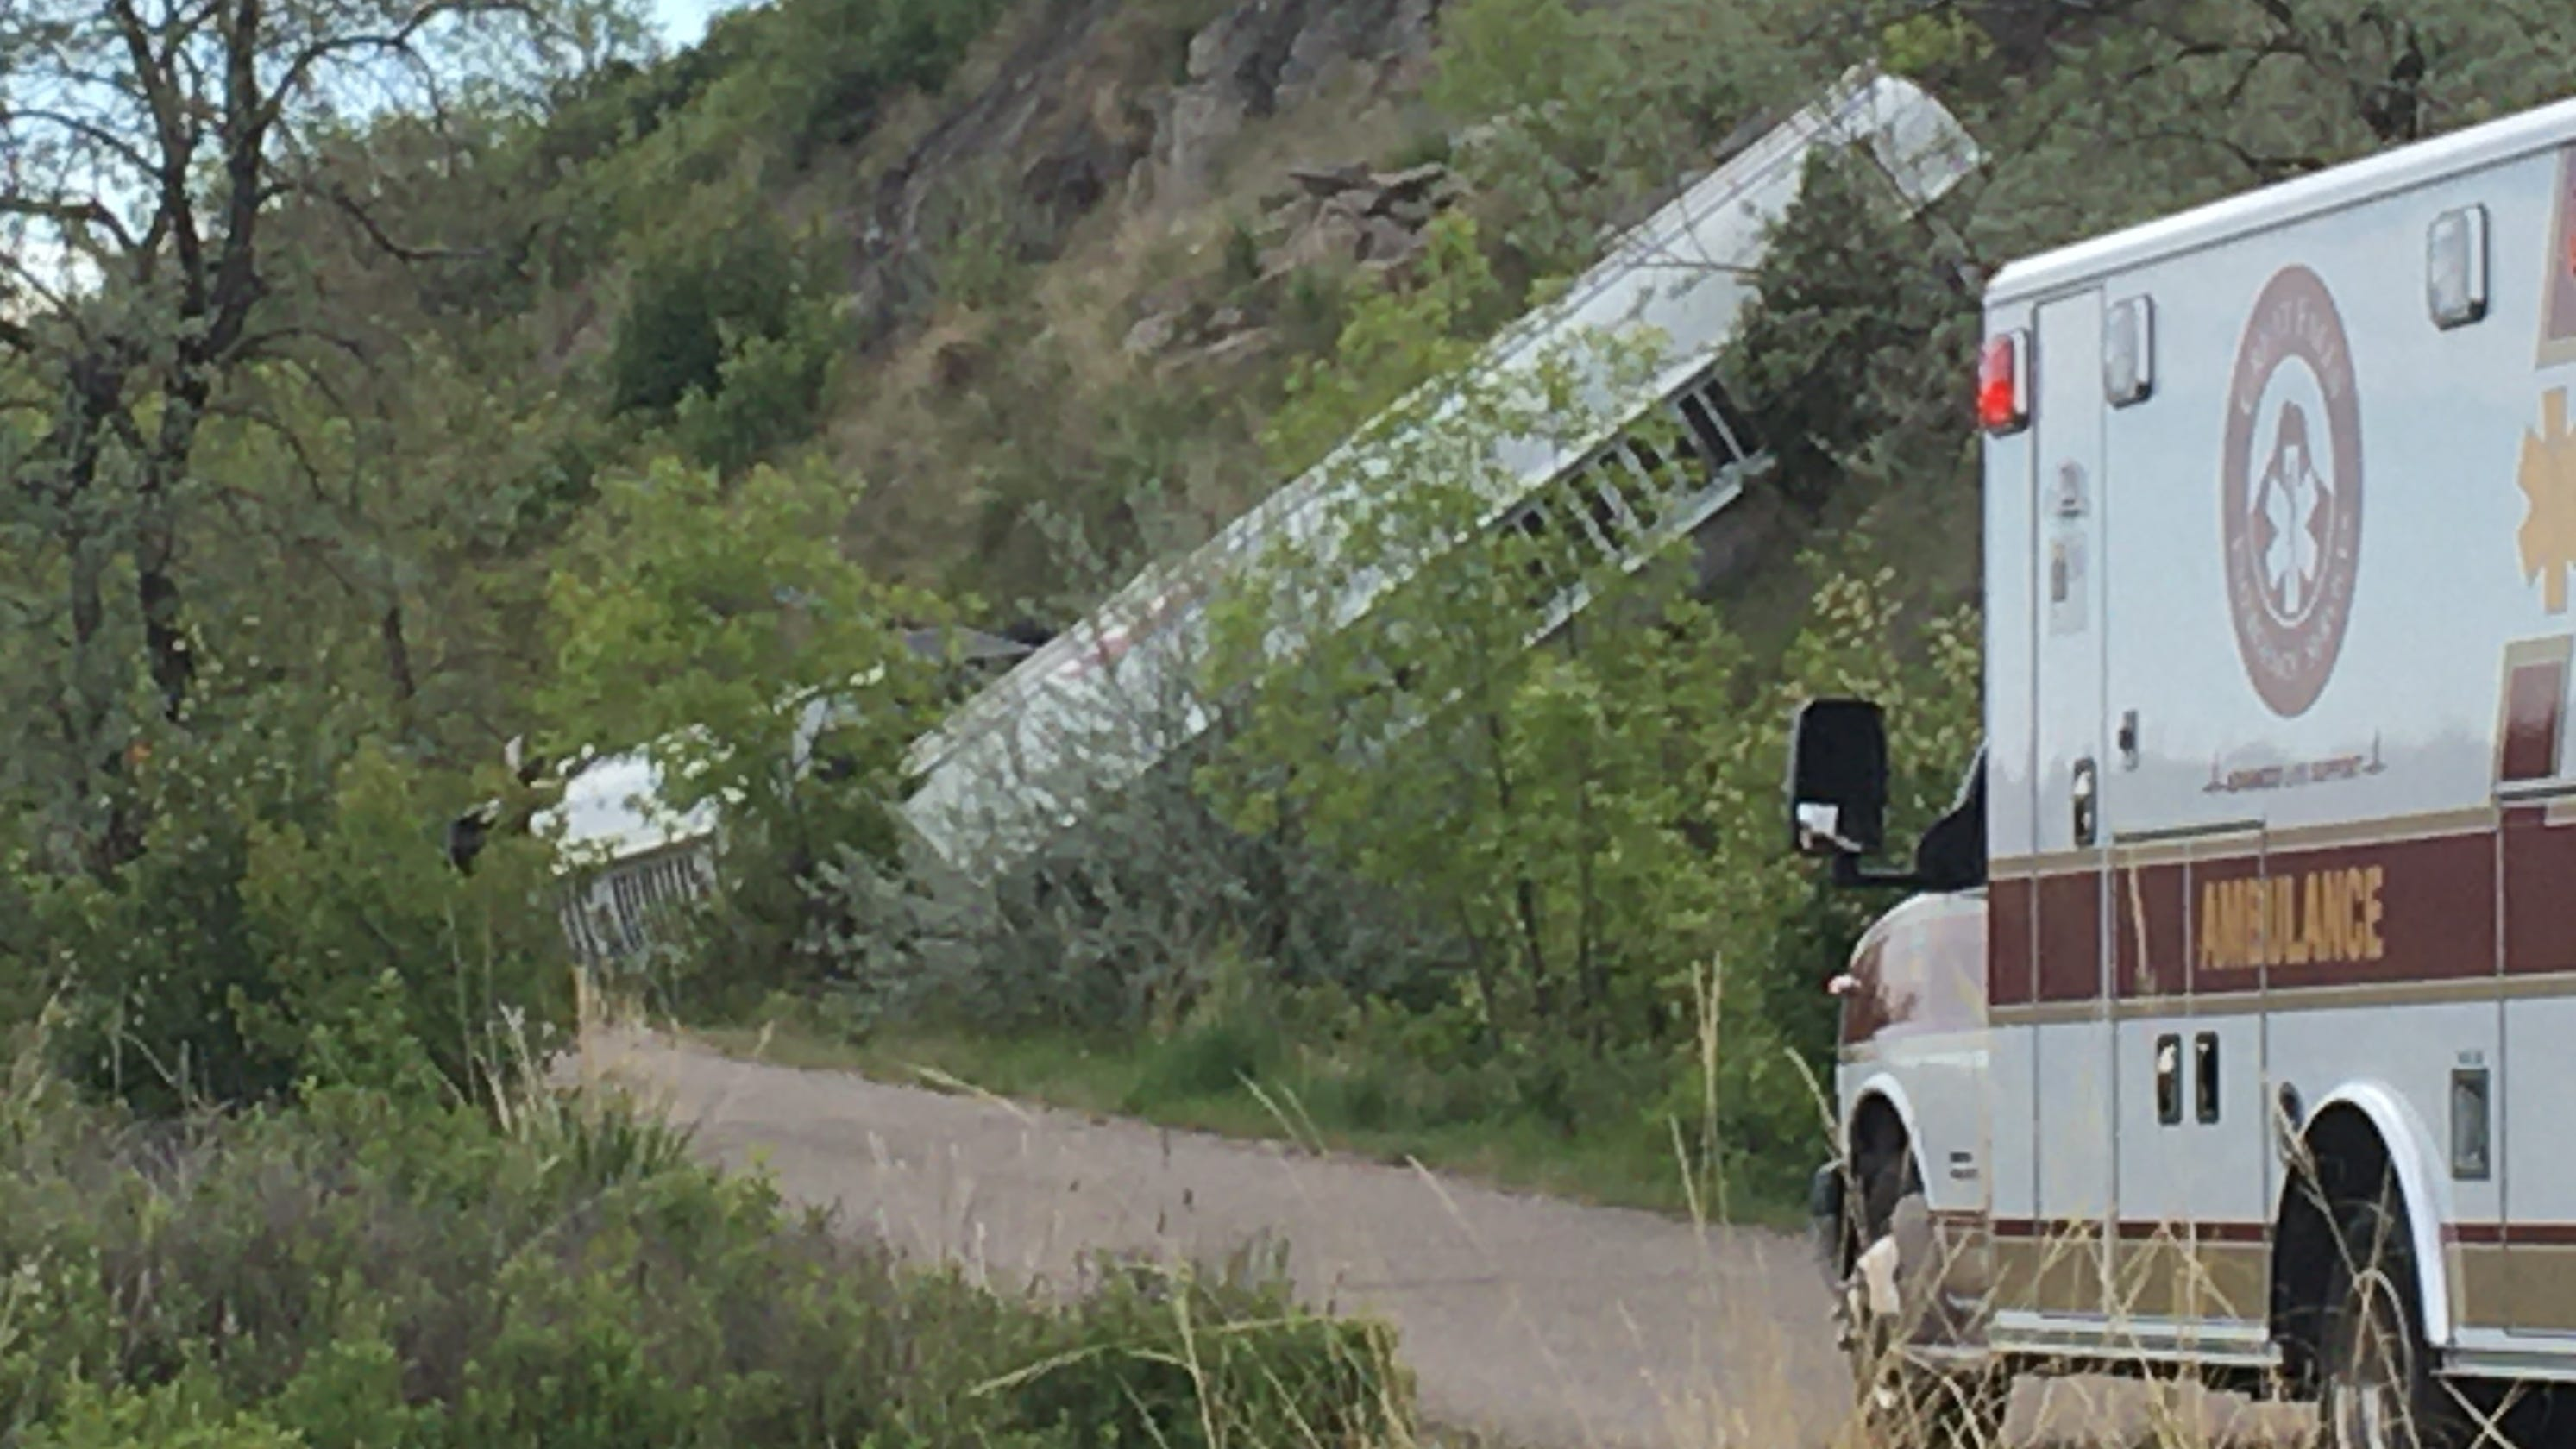 Fuel truck goes off road on River Drive in Great Falls above Black Eagle Dam